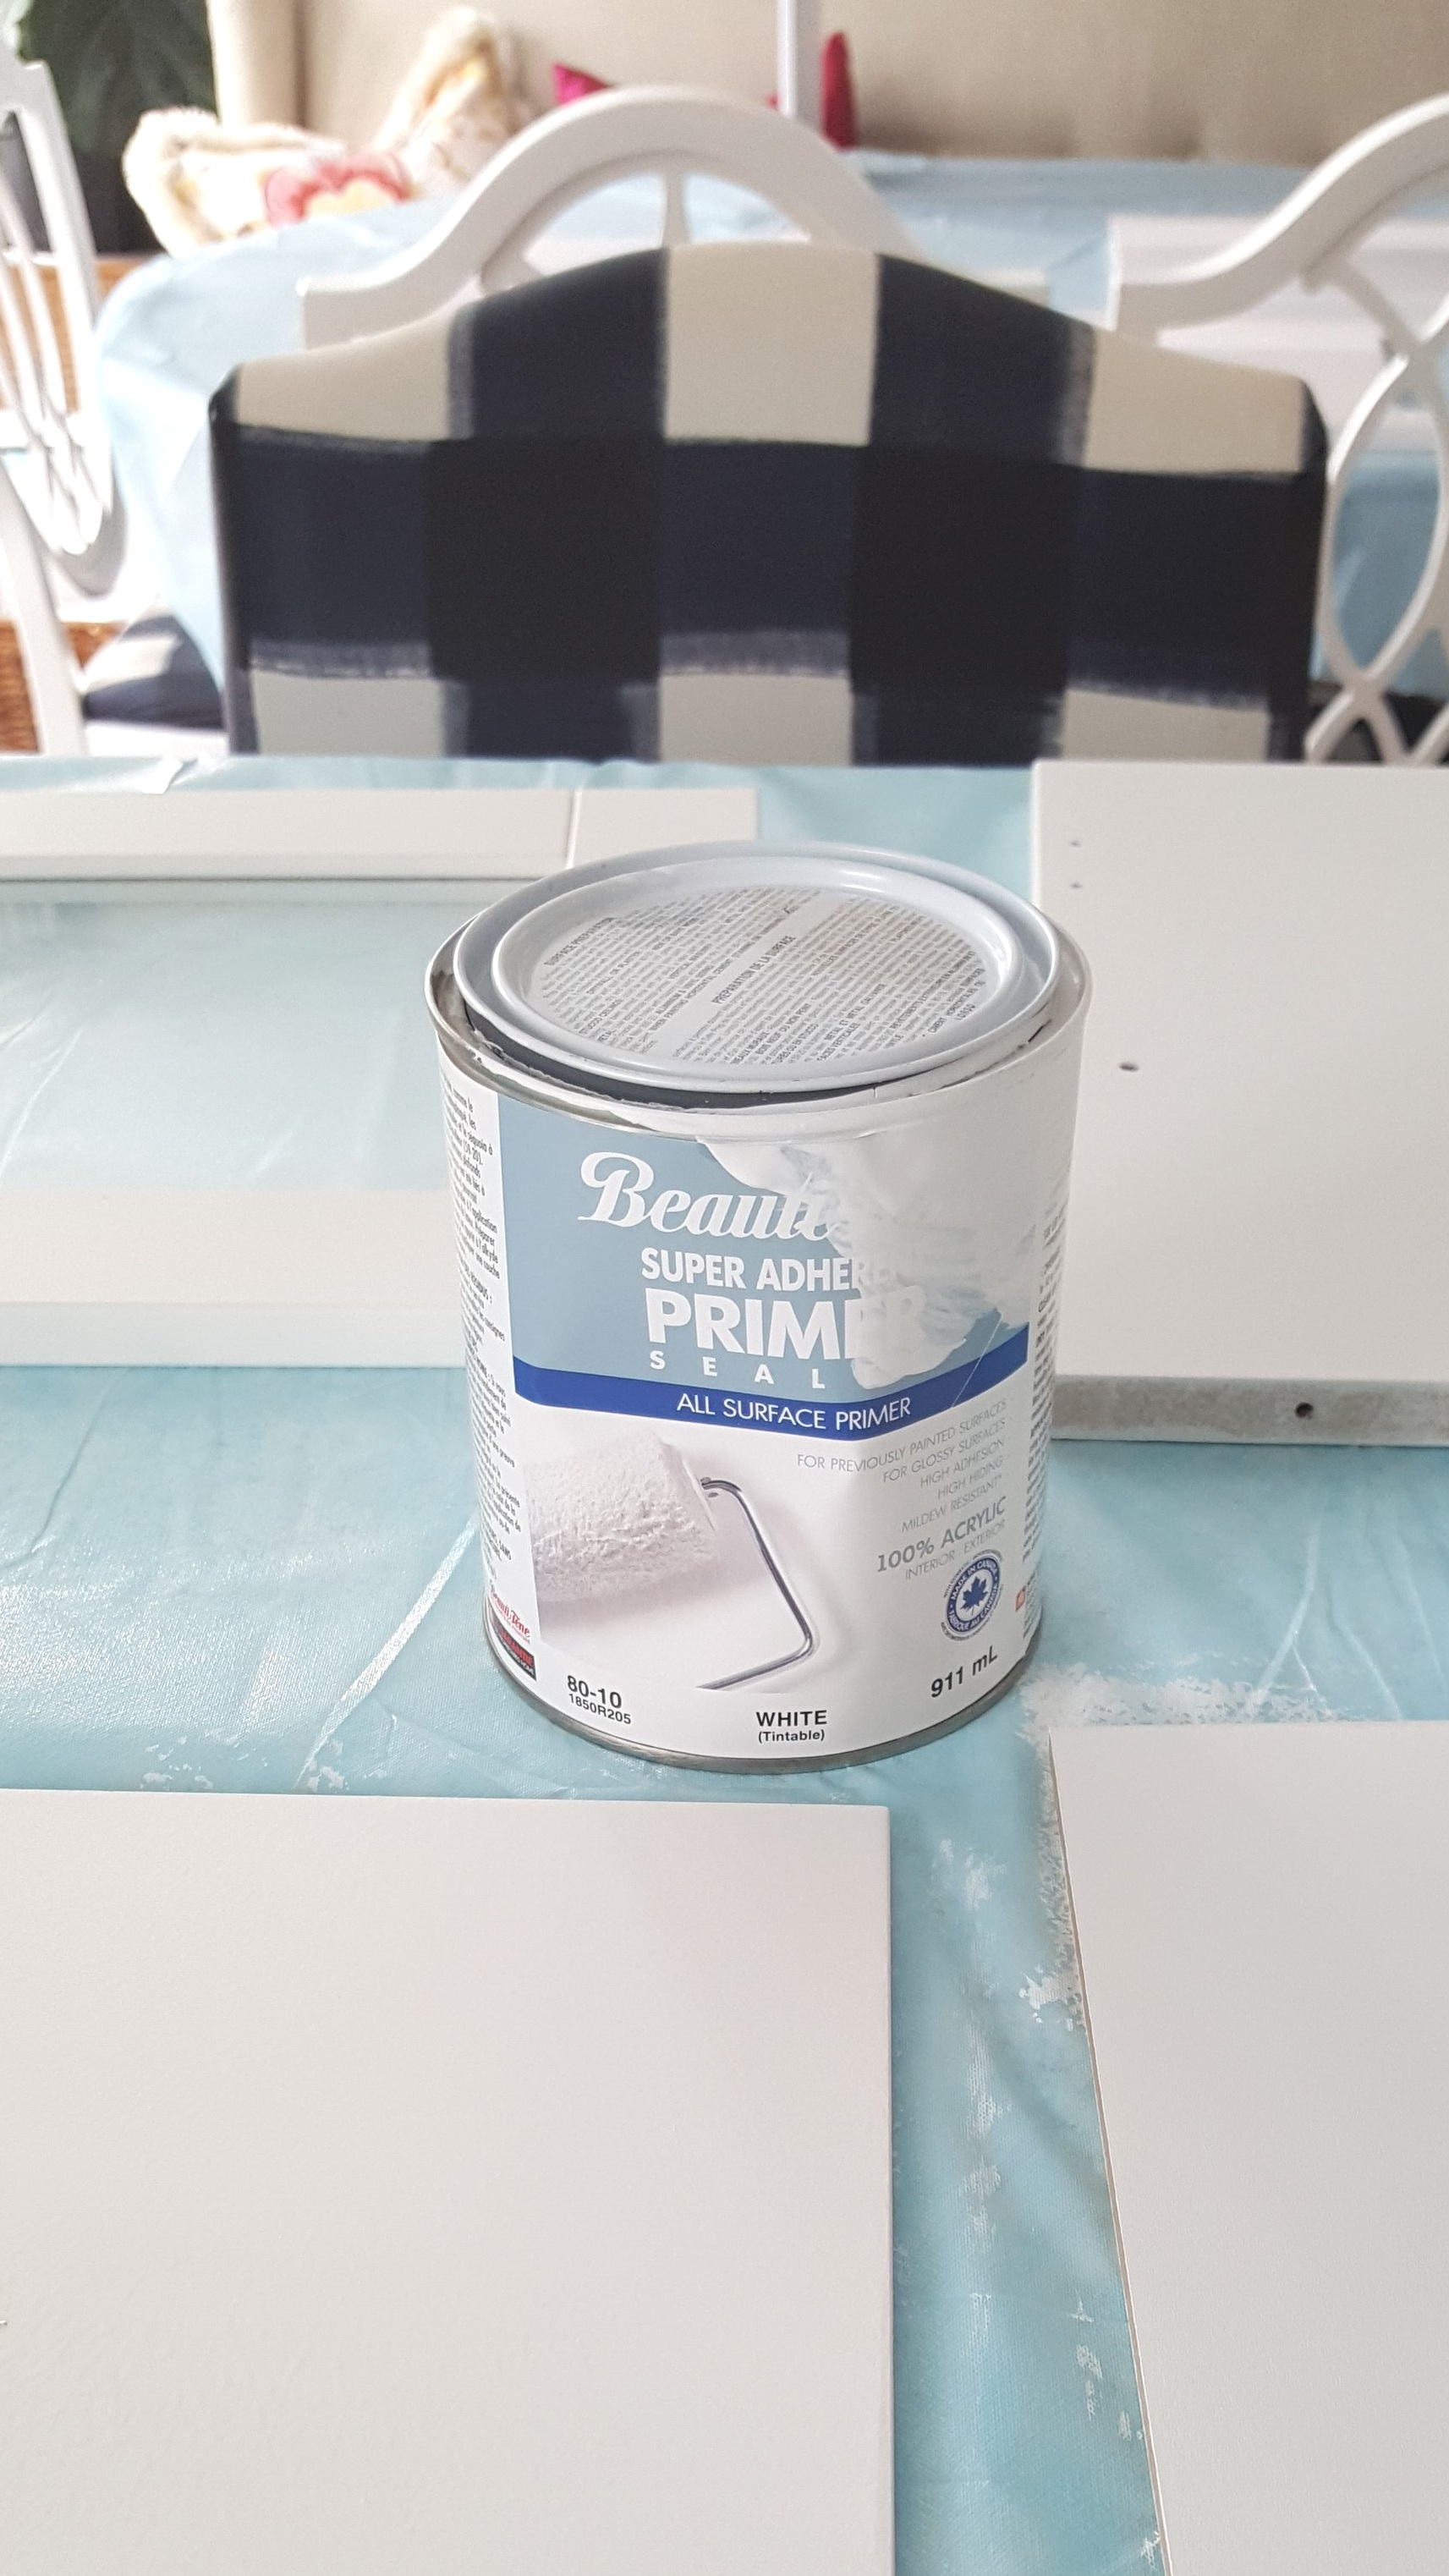 Priming the cabinets